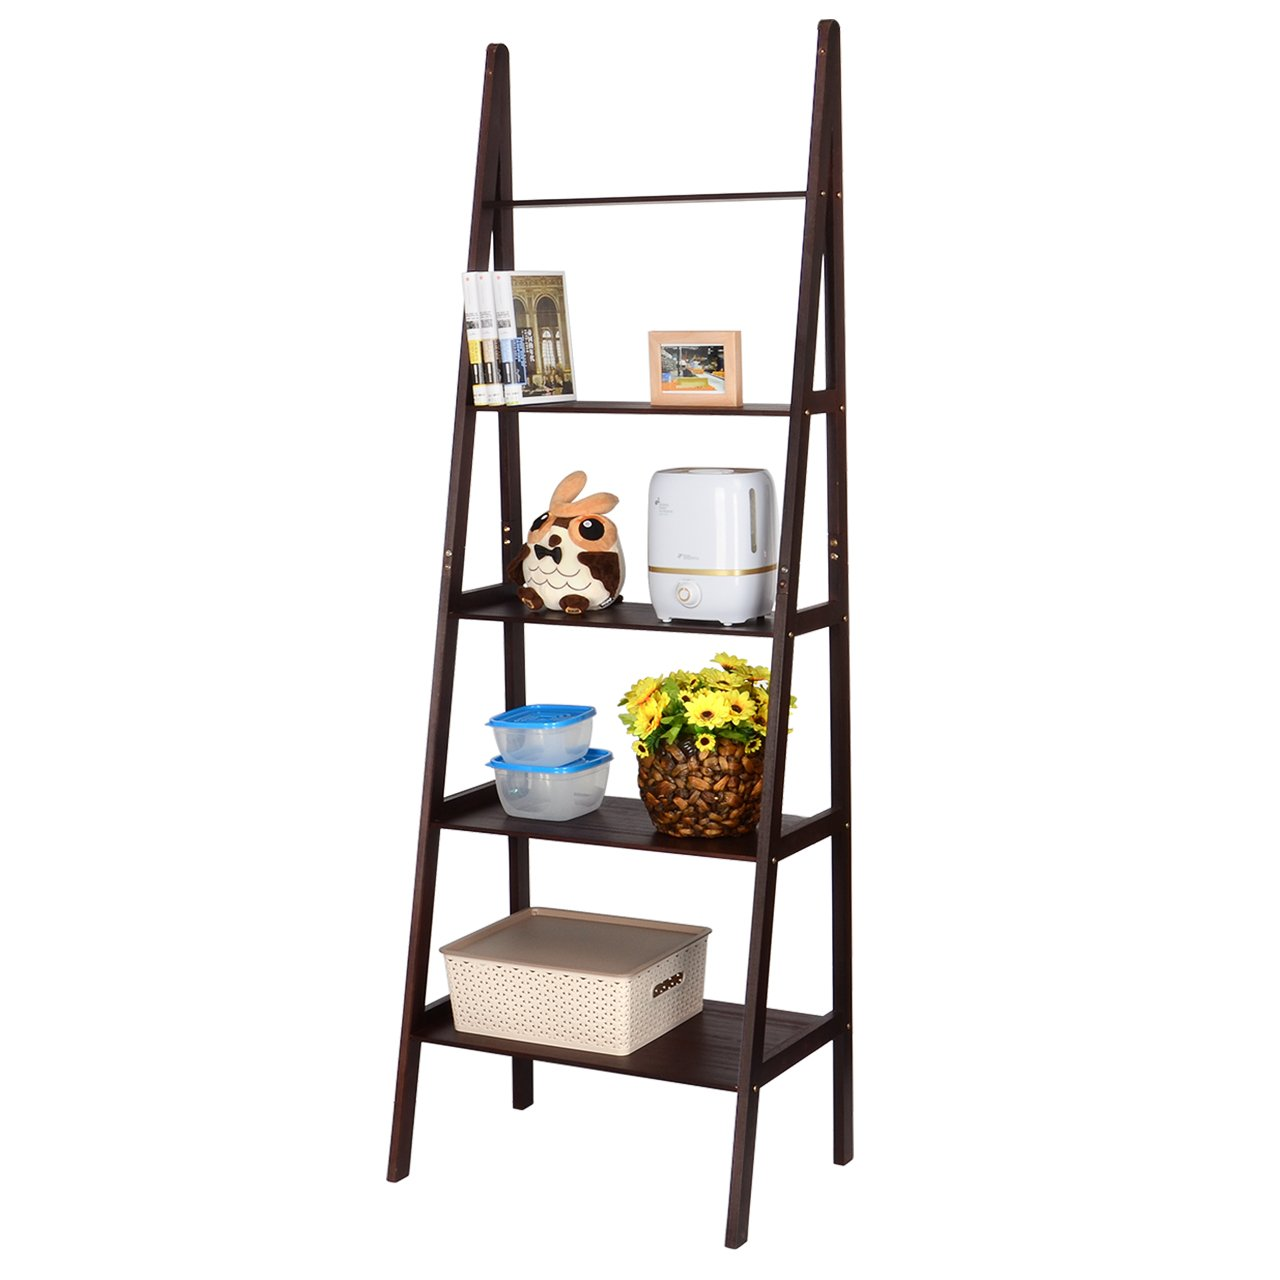 SortWise 5-Shelf A Frame Wood Ladder Shelf Bookcase, Multifunctional Storage Rack Display Wall Shelf for Plants/Books, Espresso